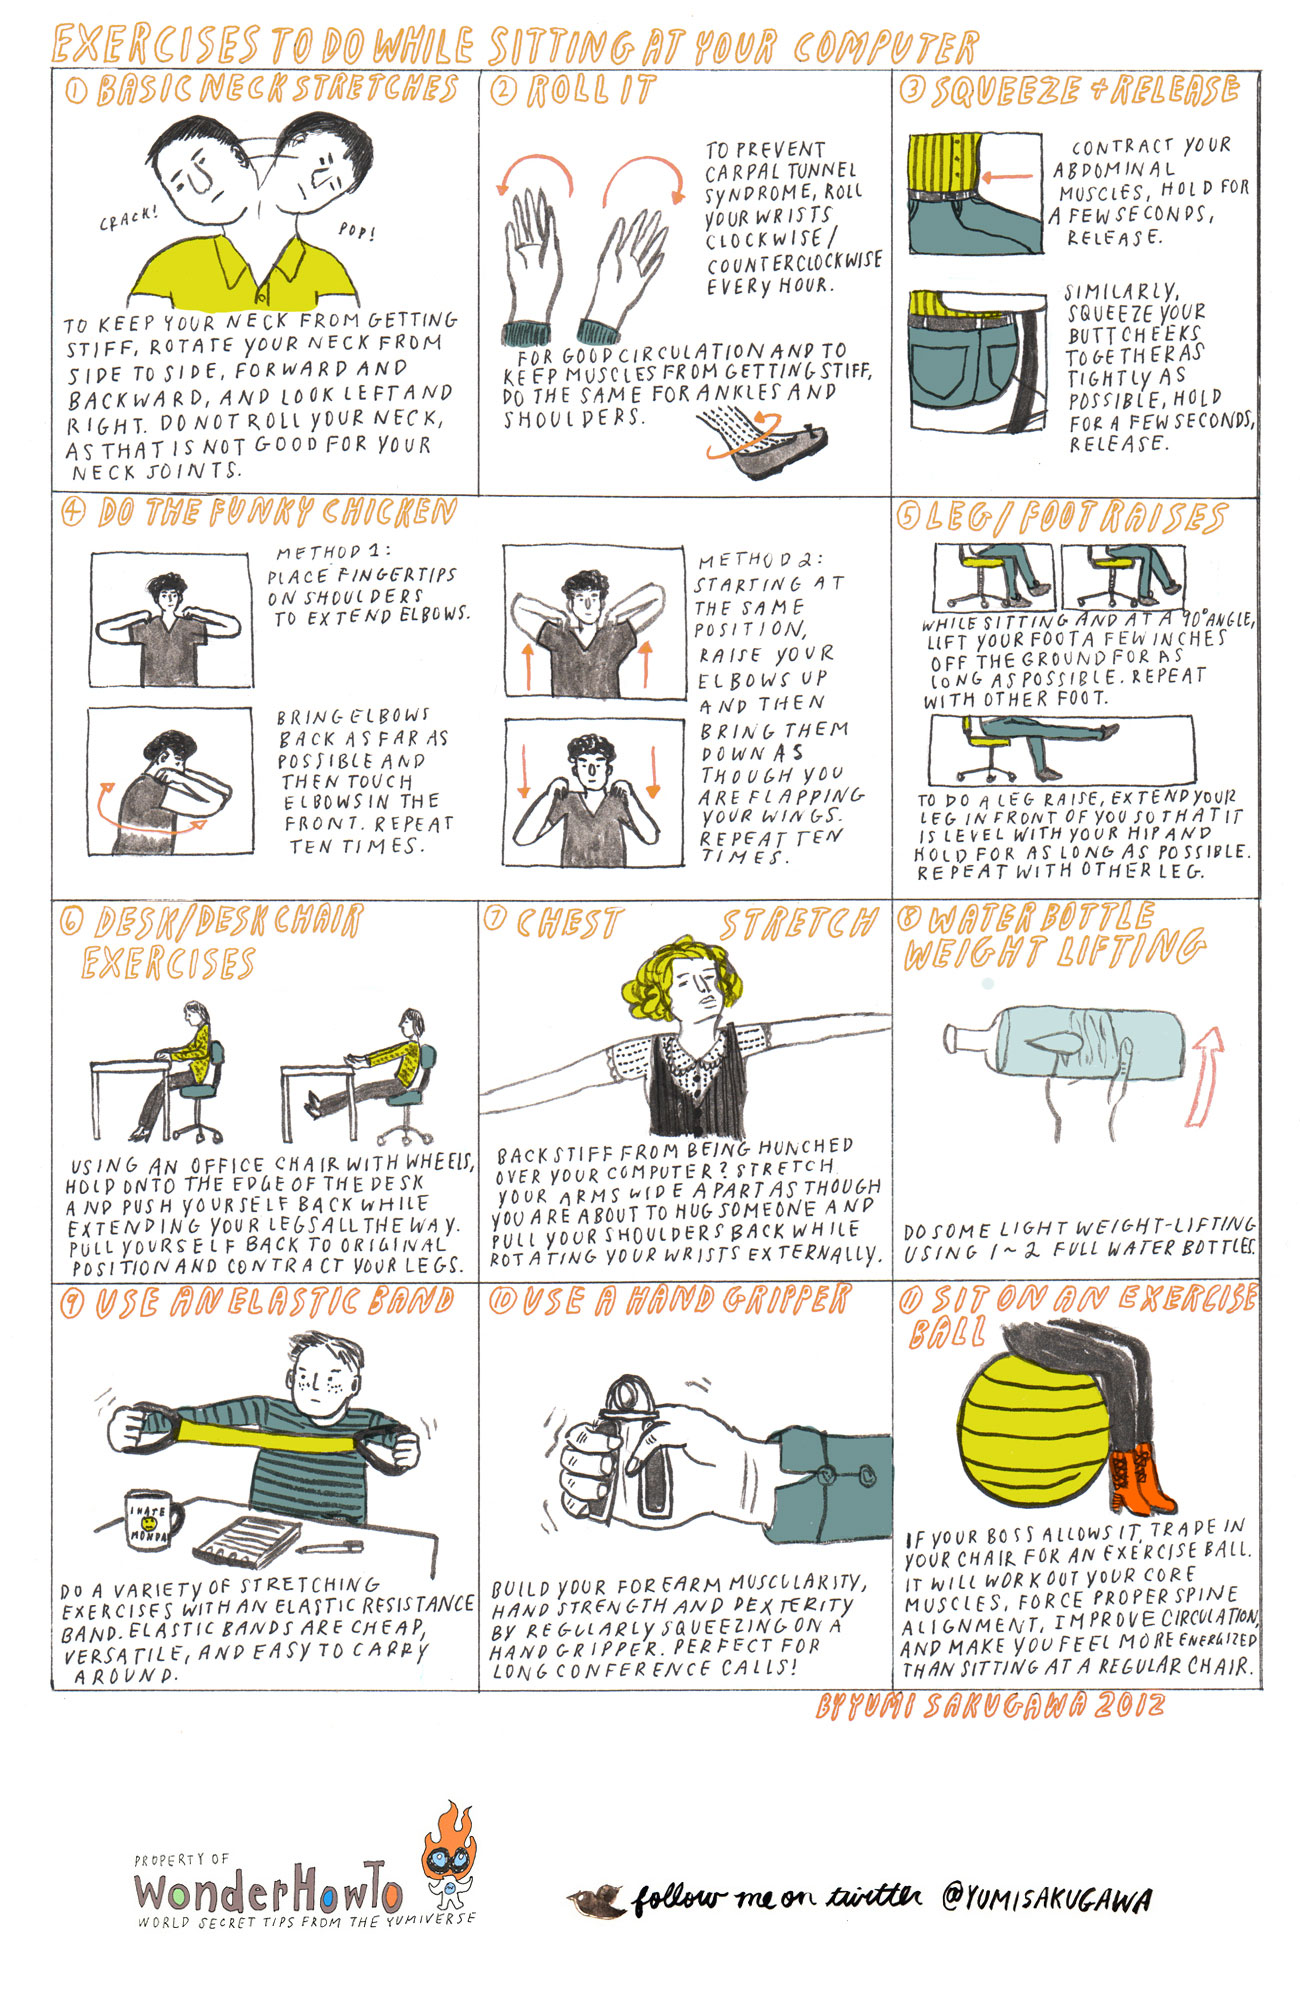 How to Exercise at Your Desk How to Exercise at Your Desk new picture